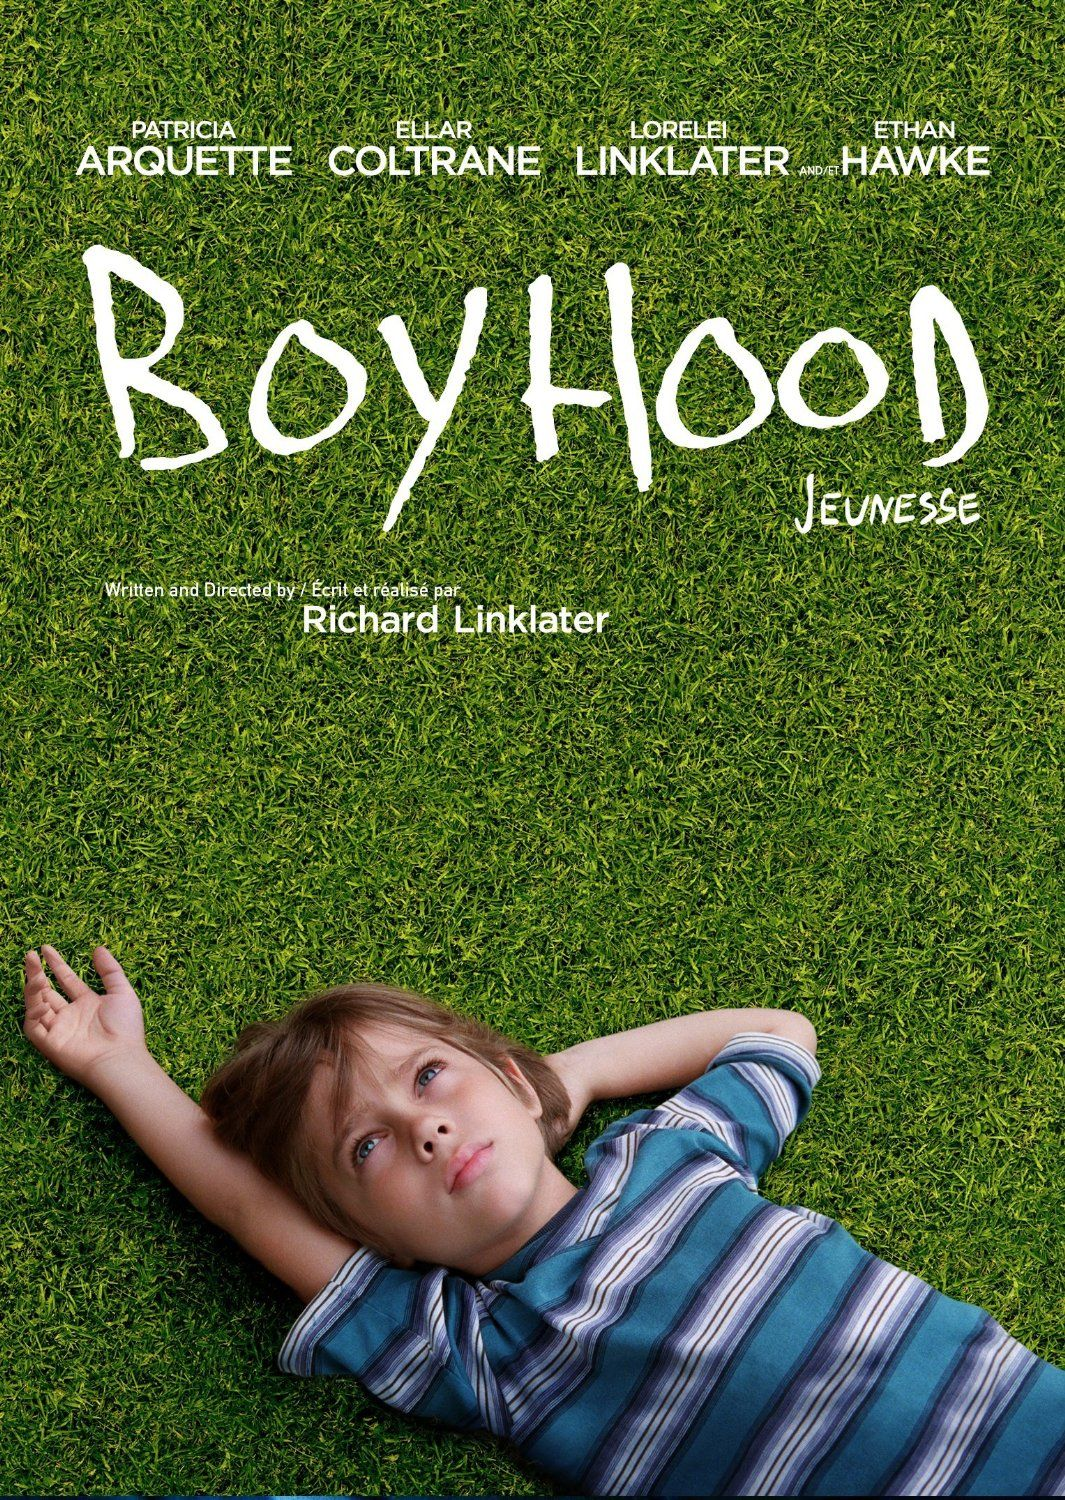 Boyhood (Bilingual): Ethan Hawke, Patricia Arquette, Ellar Coltrane, Richard Linklater